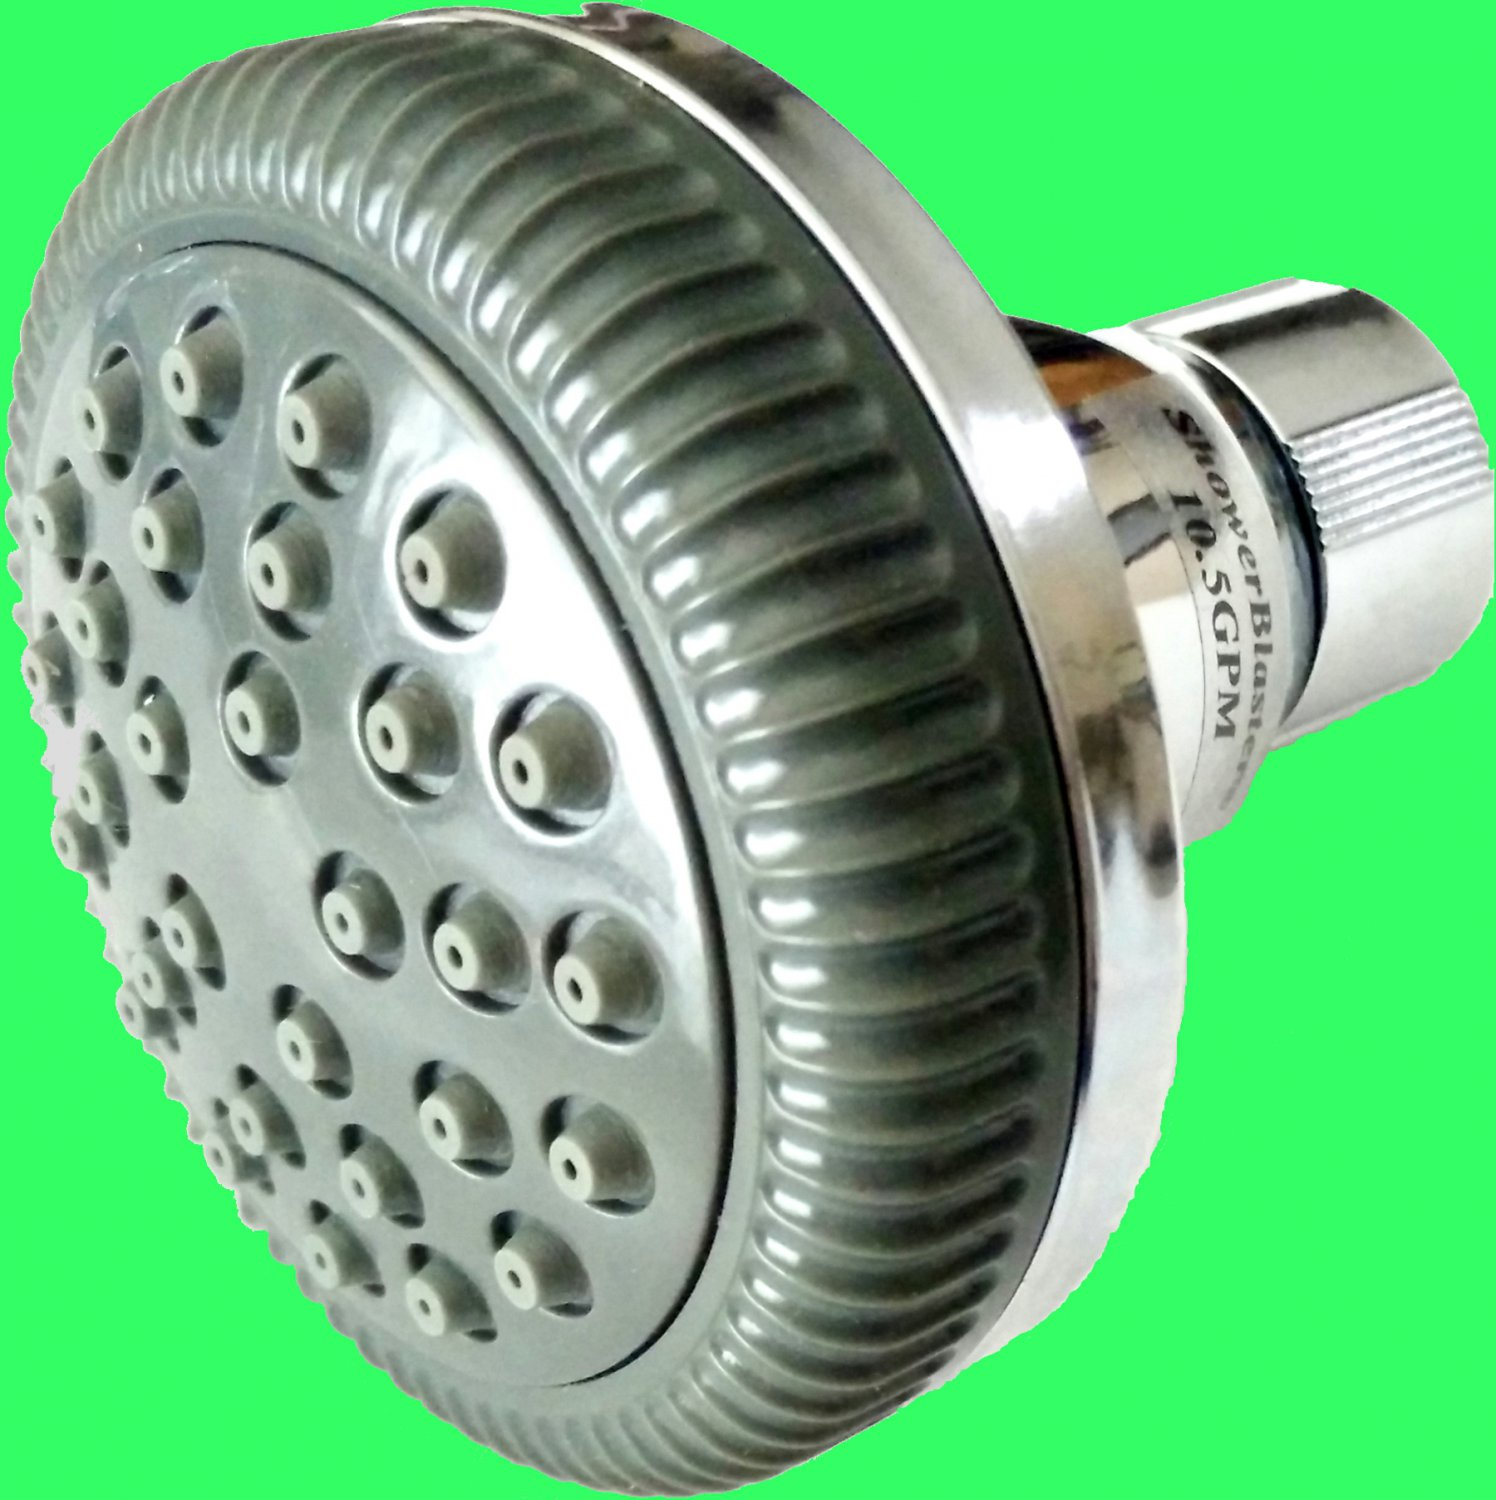 SHOWER BLASTER ABOVE 10.5 gpm DRENCHER HIGH PRESSURE SHOWERBLASTER SHOWERHEAD.